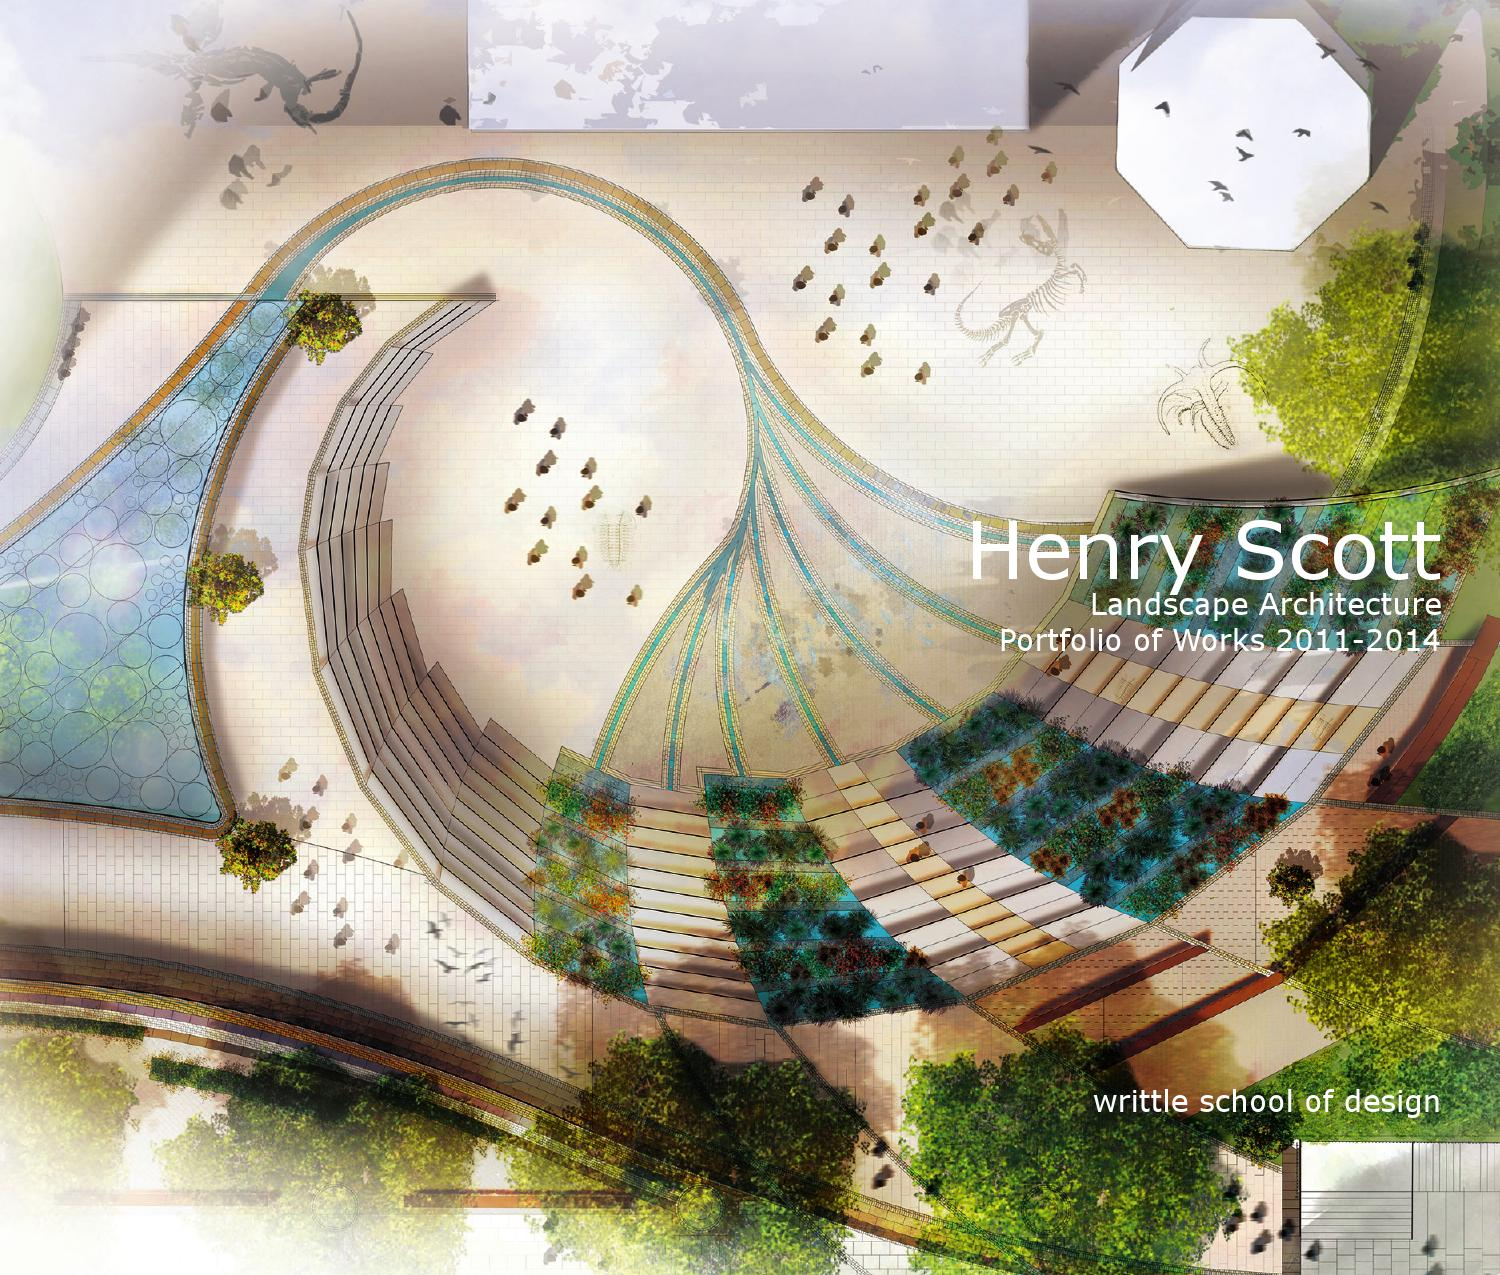 Landscape architecture portfolio of works by henry scott for Garden design workbook